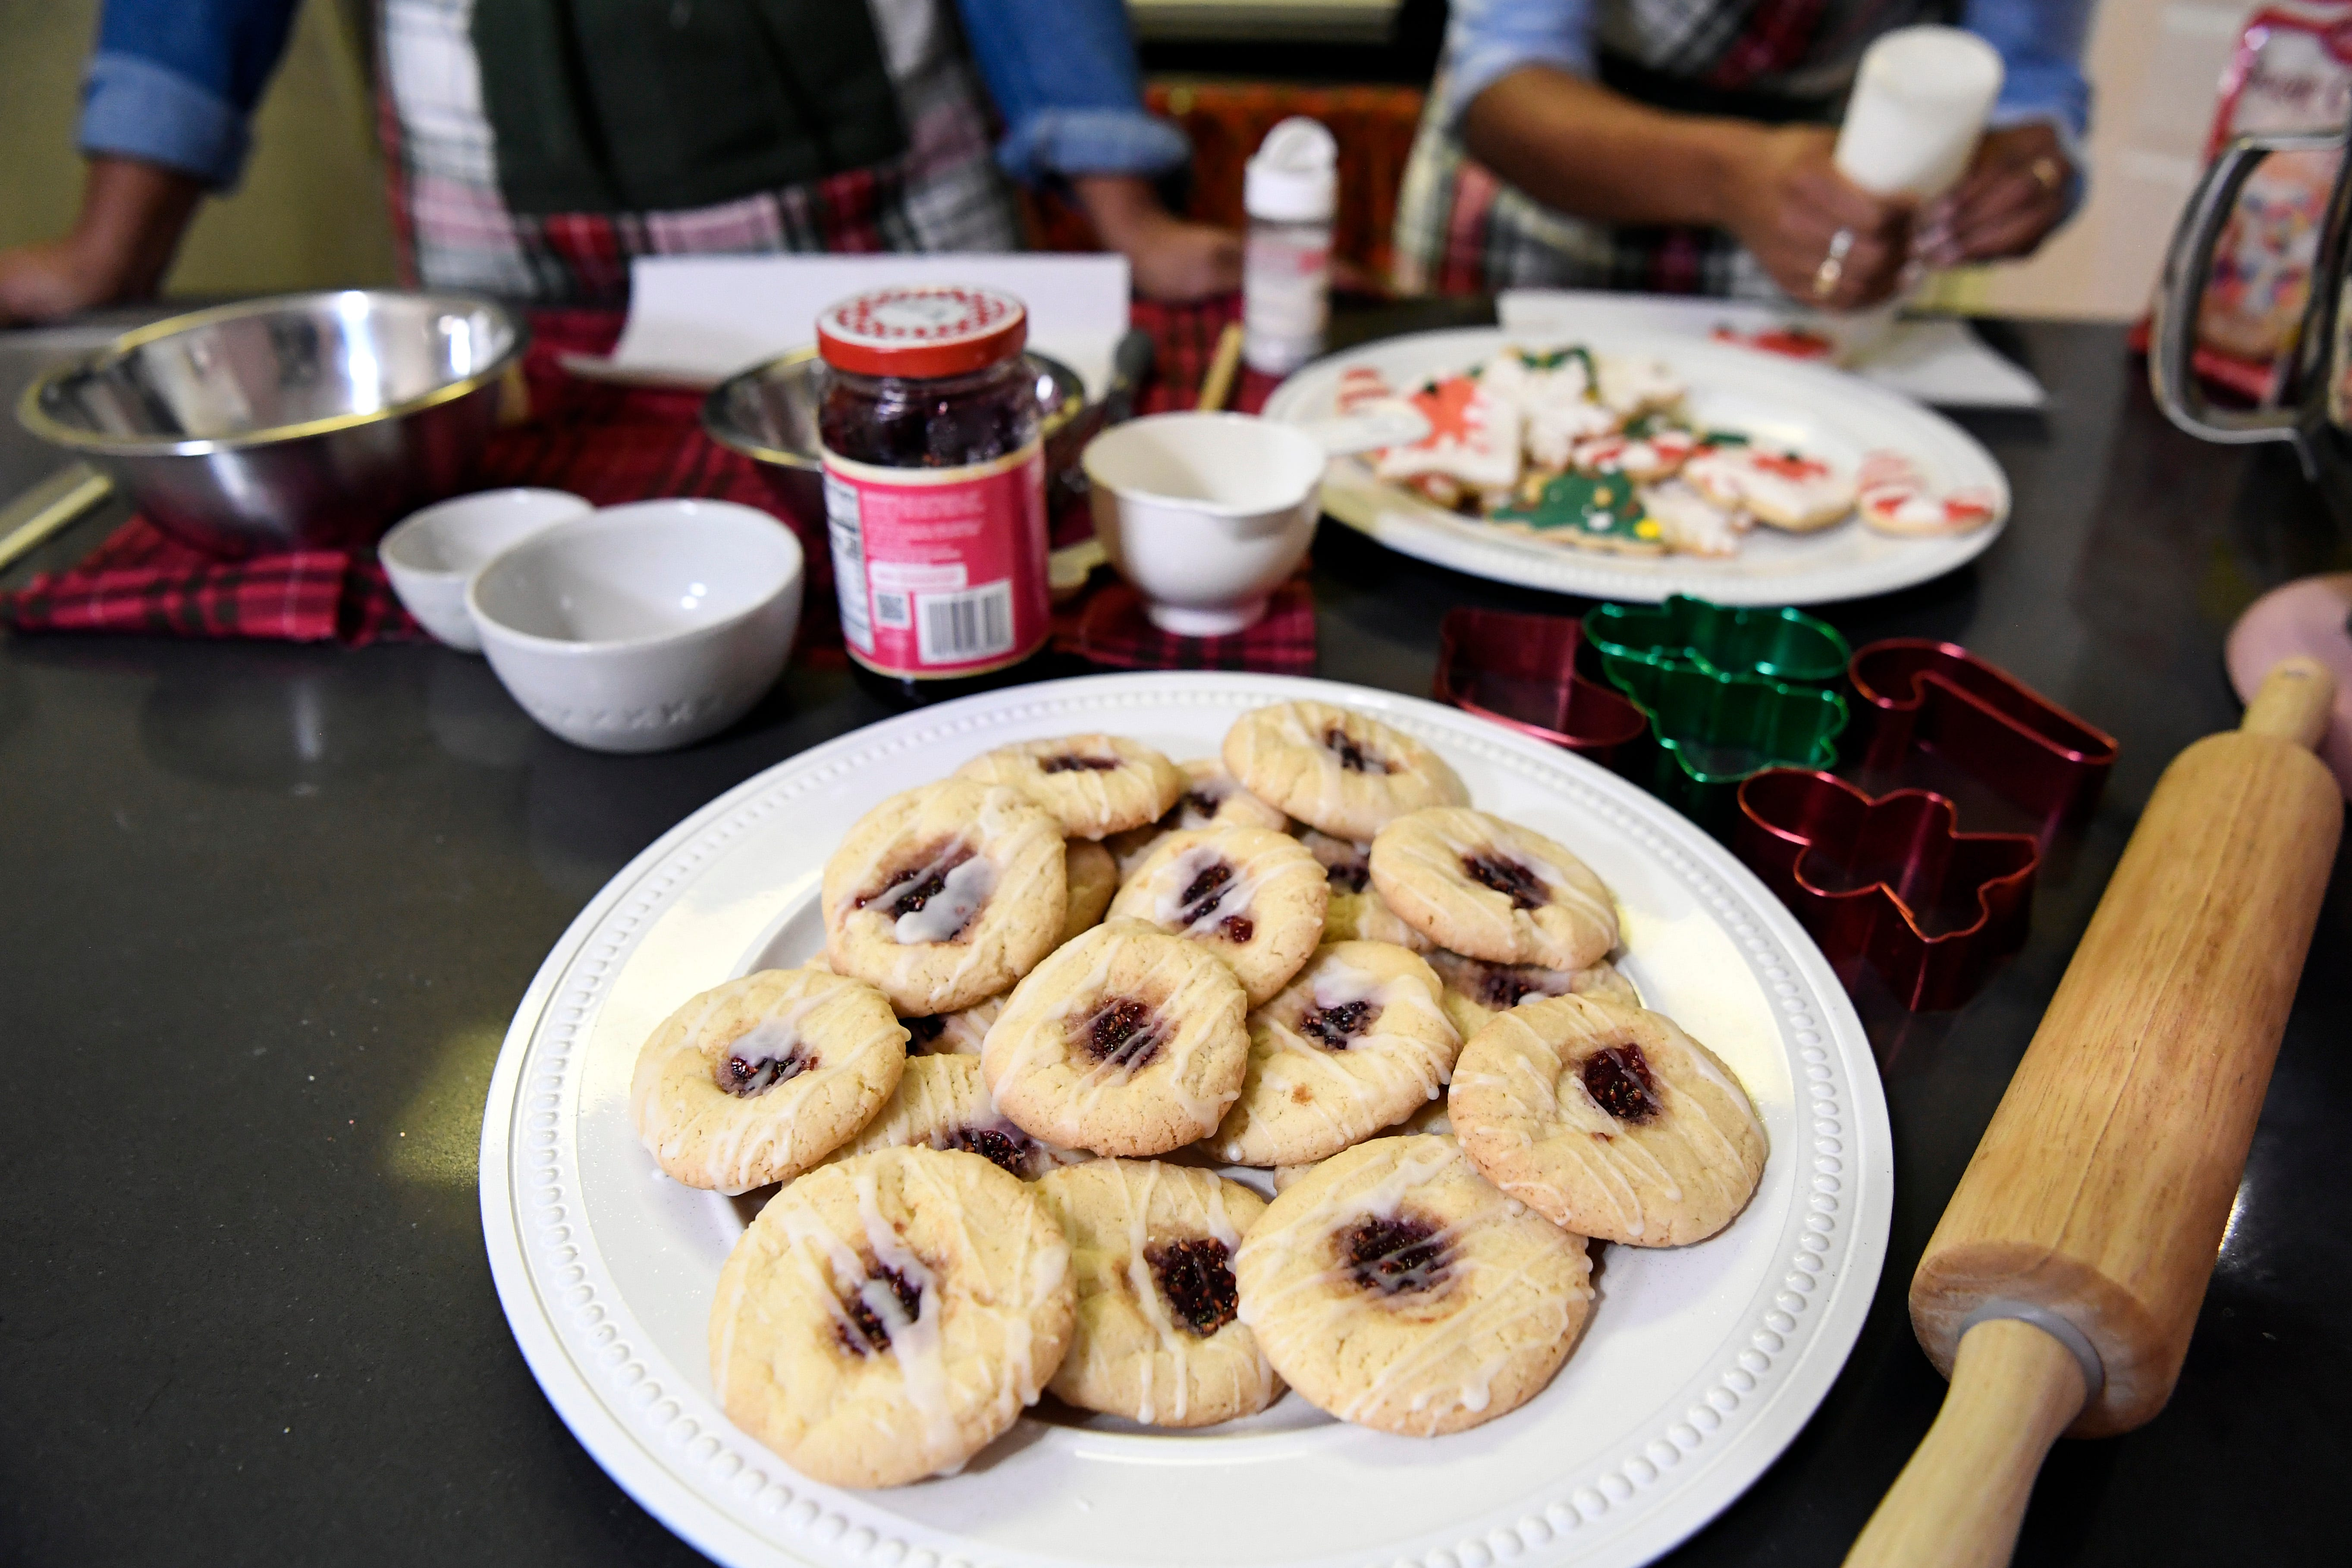 Twin sisters use baking to stay connected in time of COVID